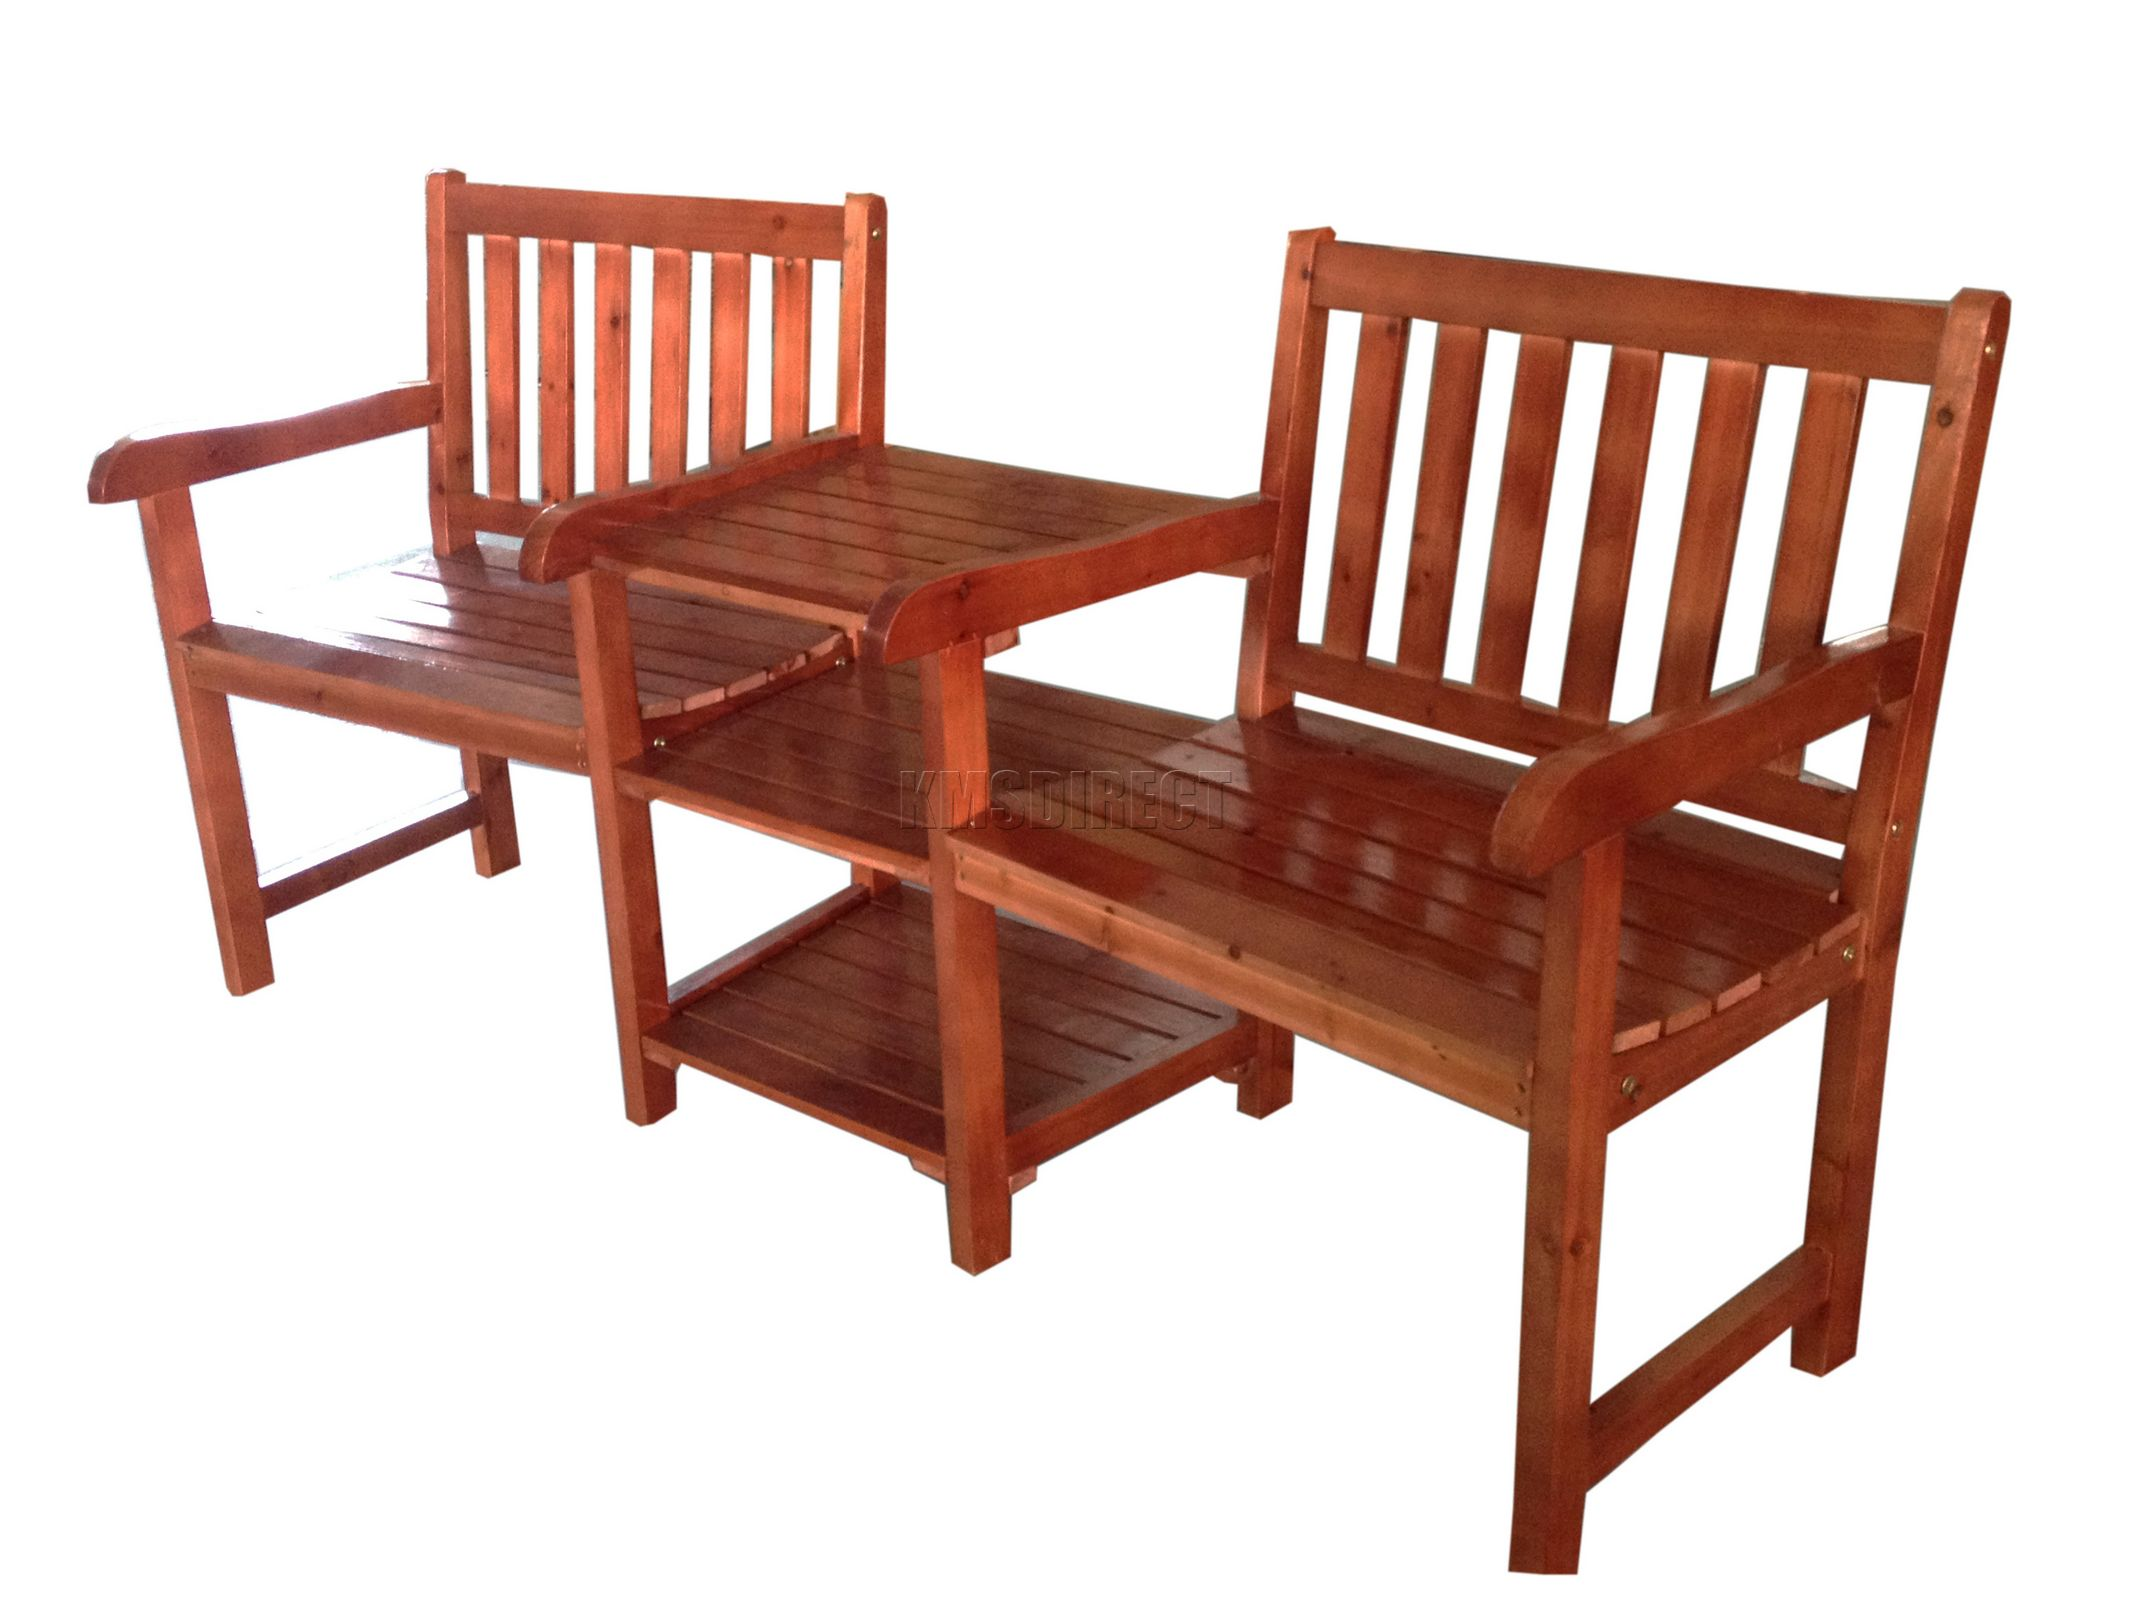 Outdoor furniture garden patio 2 seater wooden companion for Outdoor furniture benches